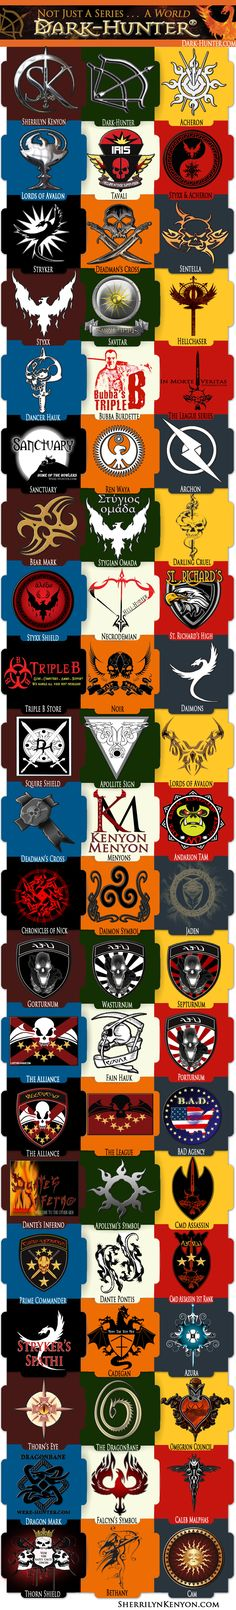 Logos from the SK series